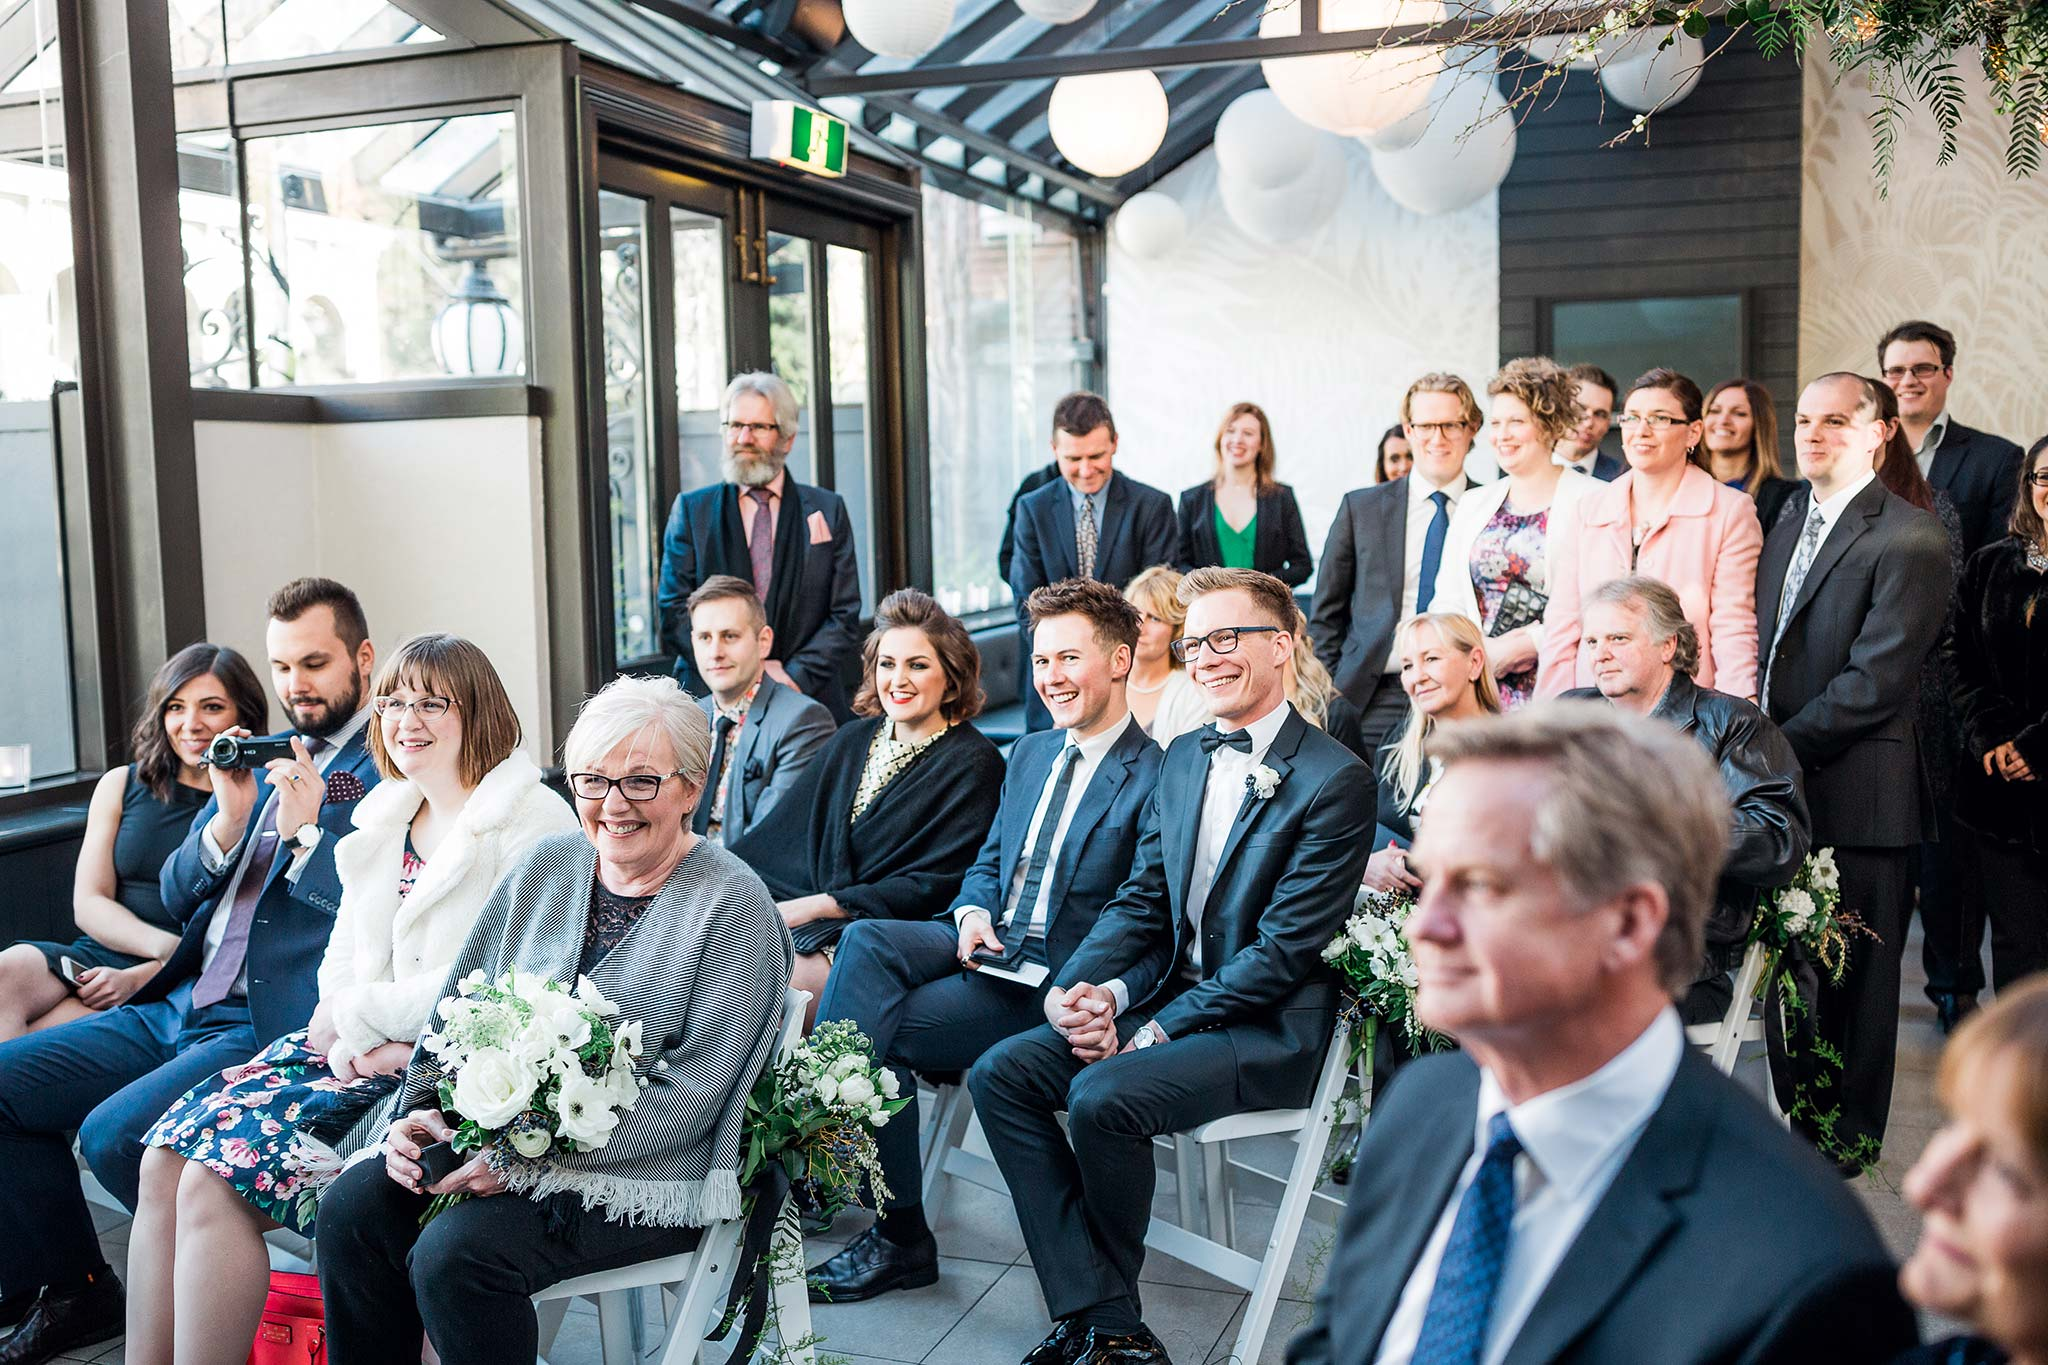 melbourne-fitzroy-st-andrews-conservatory-pumphouse-wedding-venue-ceremony-guests-reaction